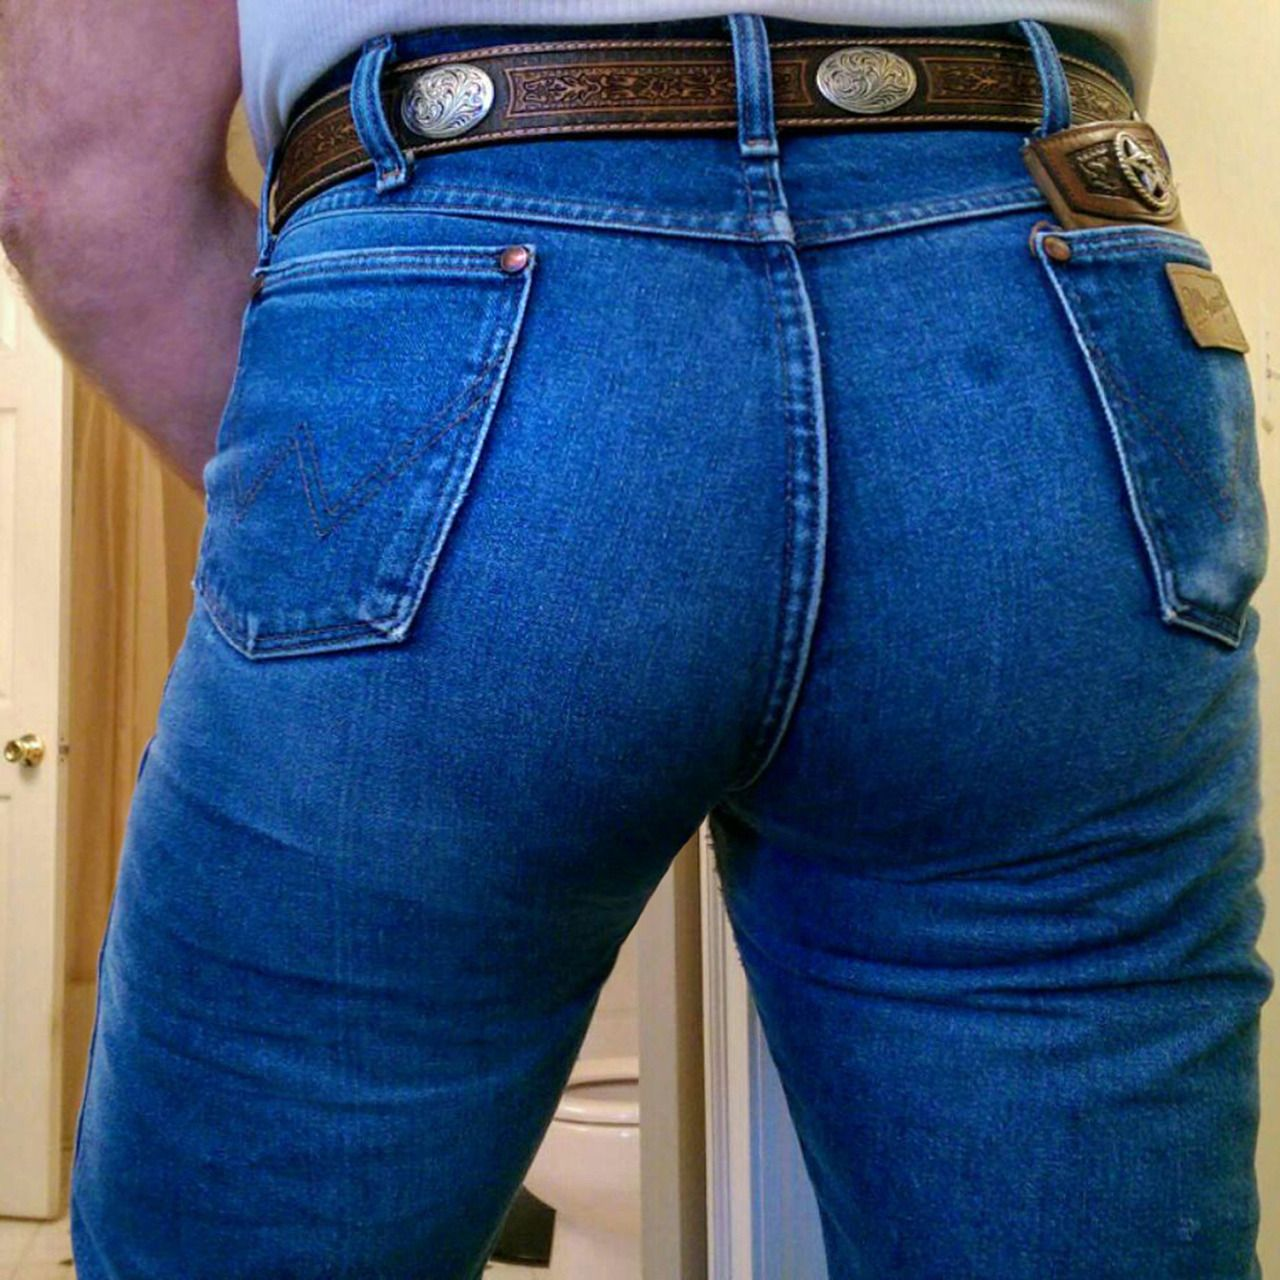 thewranglerbutts wrangler the sexiest jeans ever made wrangler butts drive us nuts follow me. Black Bedroom Furniture Sets. Home Design Ideas